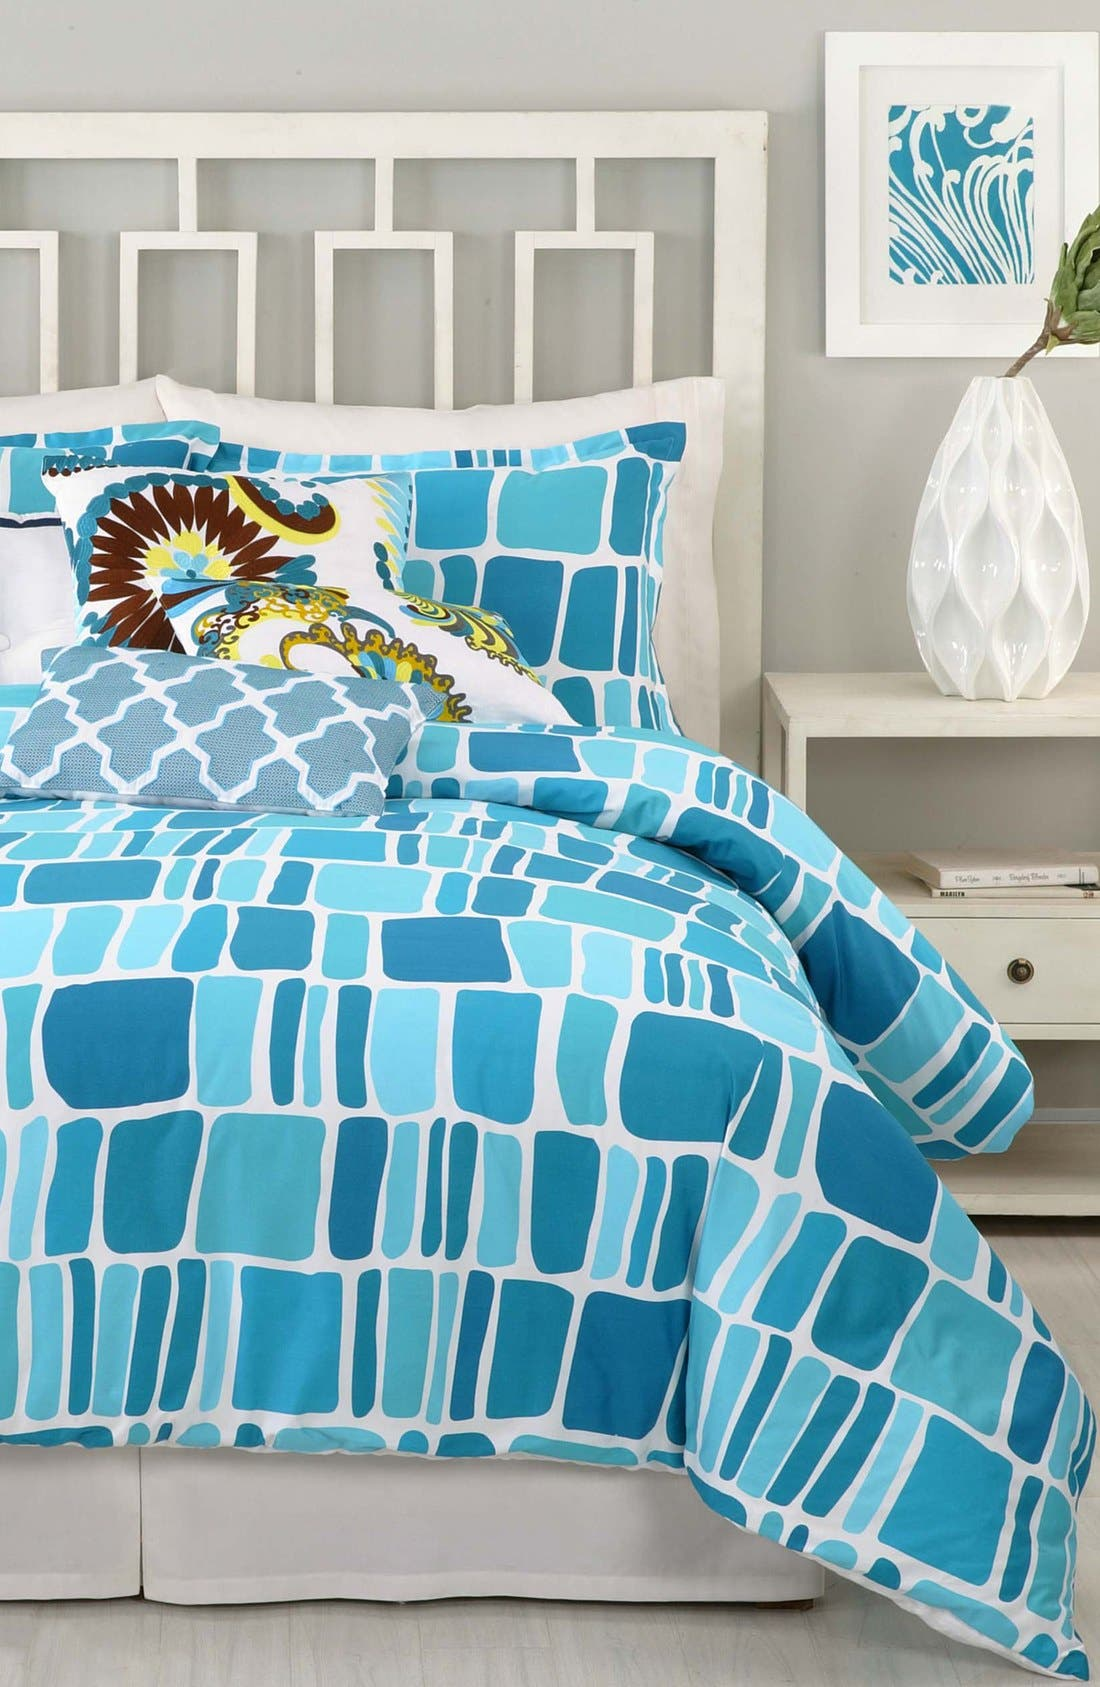 Main Image - Trina Turk 'Stones' Comforter & Shams (Online Only)